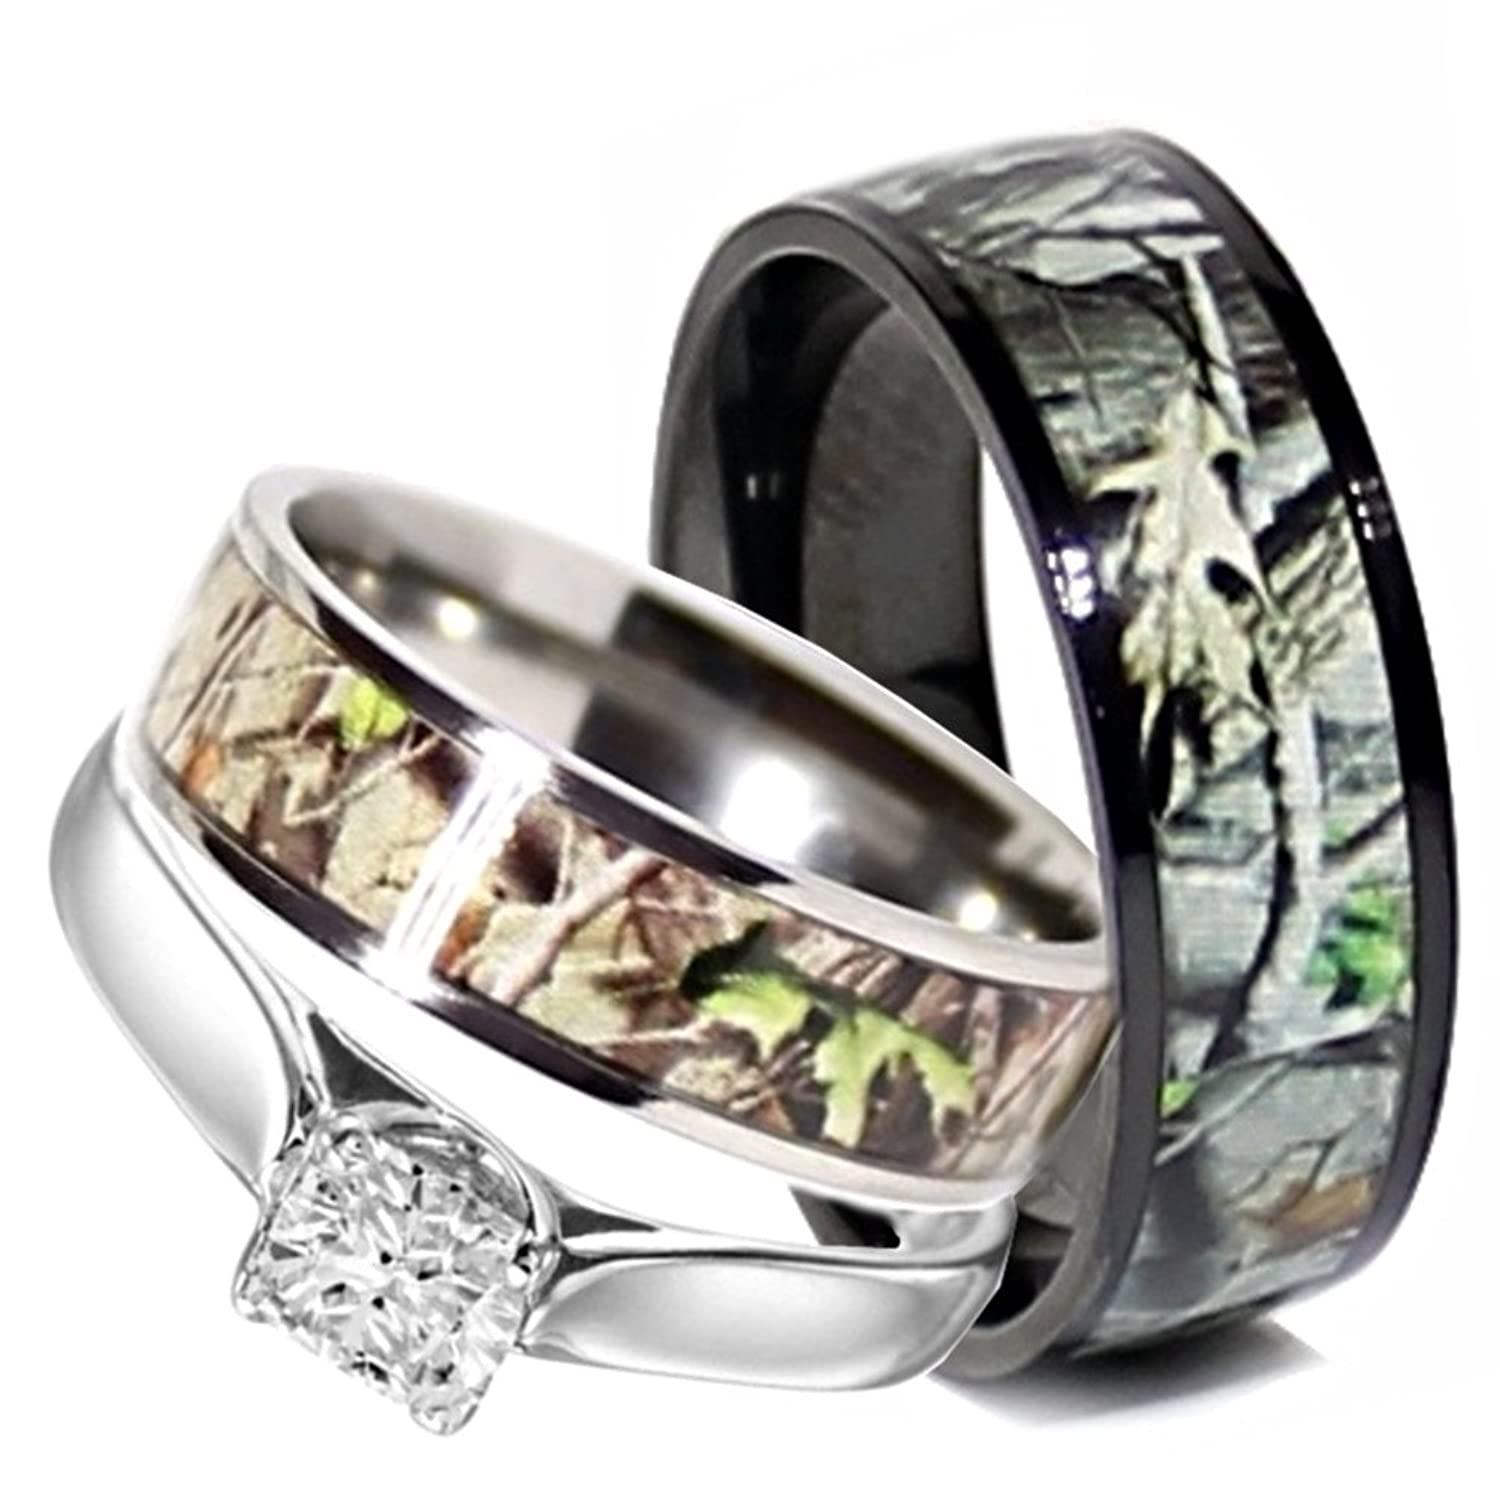 amazoncom camo wedding rings set his and hers 3 rings set sterling silver and titanium size men 10 women 10 jewelry - His And Hers Wedding Ring Sets